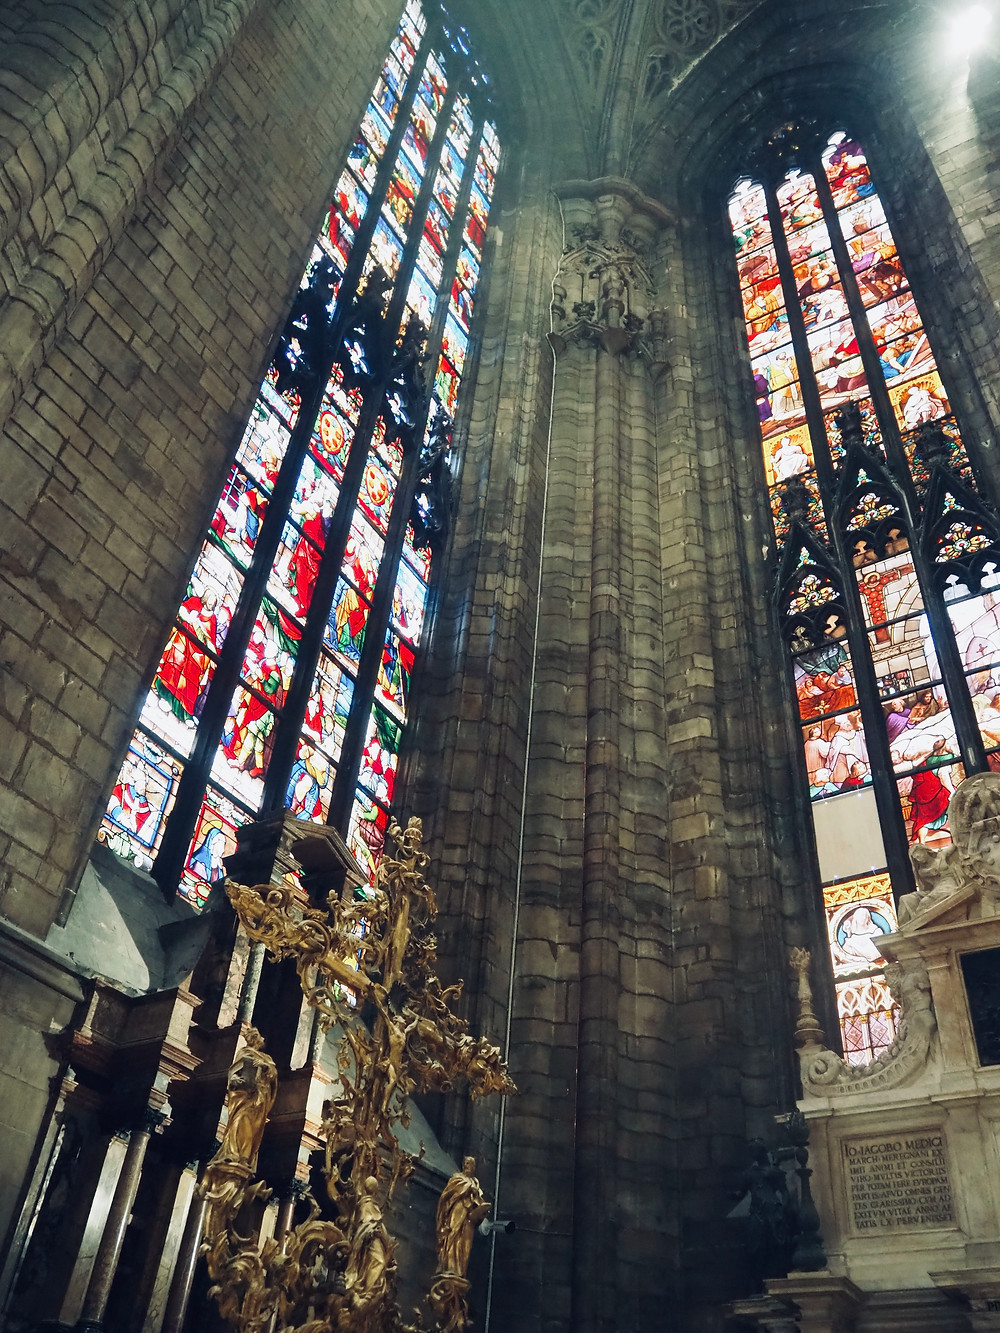 milan-cathedral-stained-glass-windows